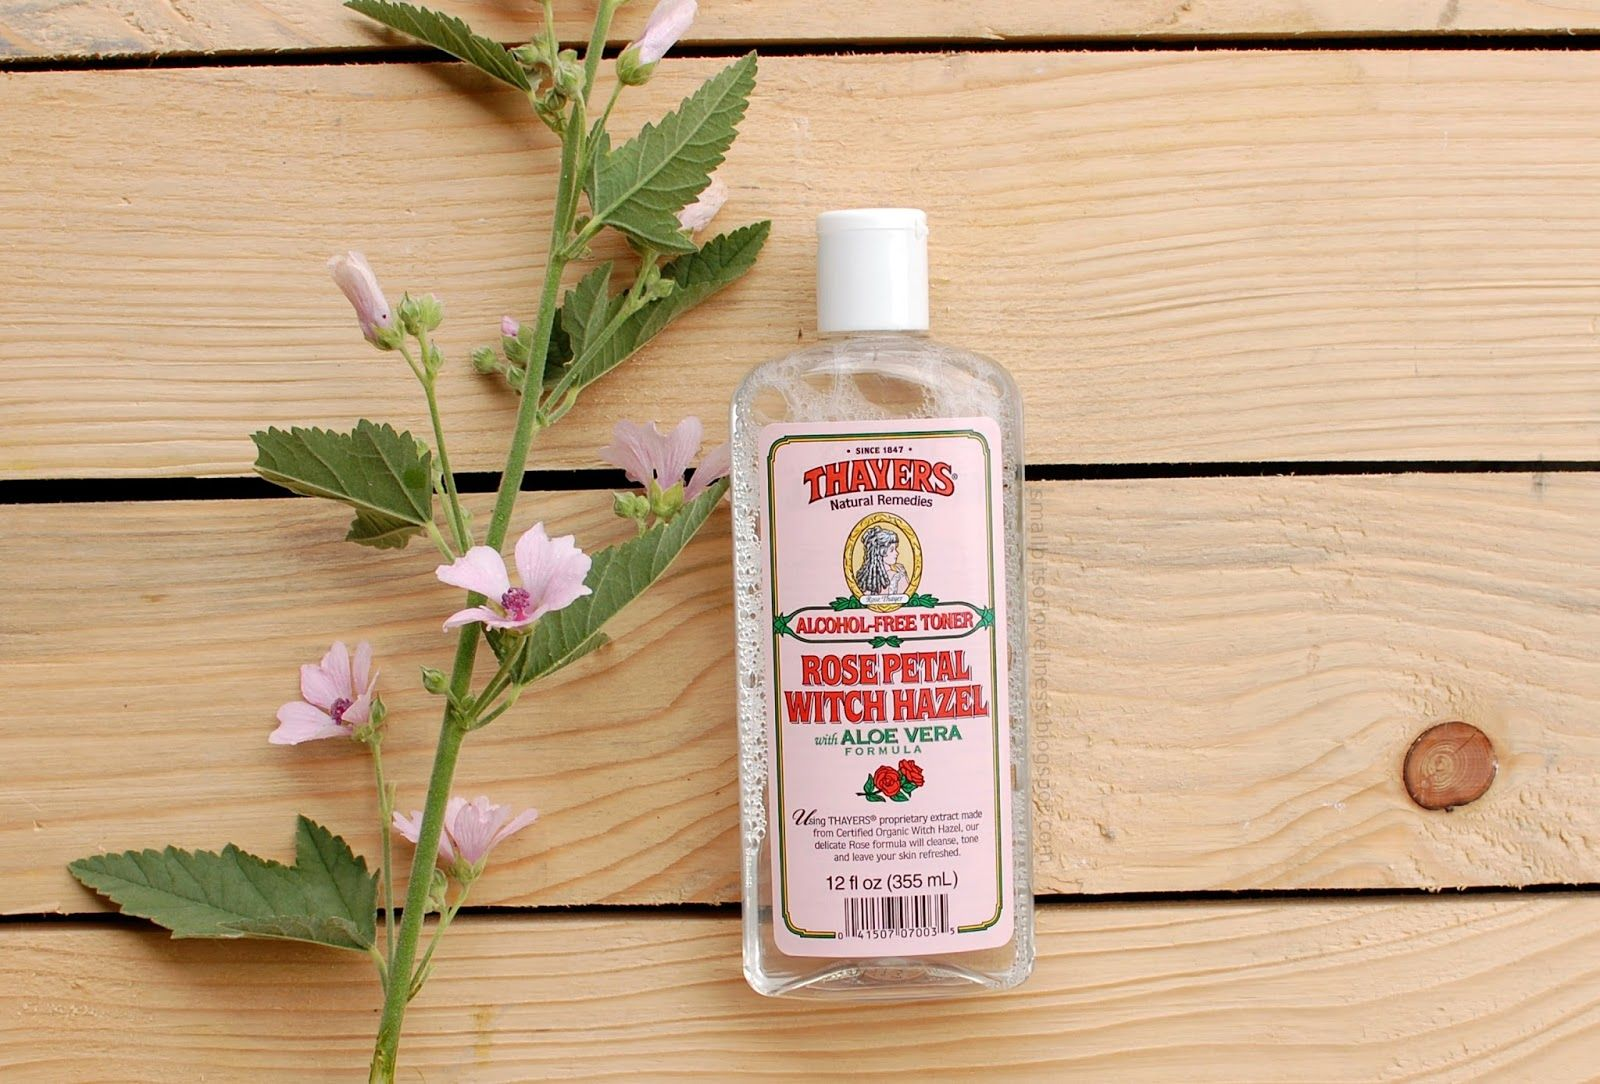 Thayers Alcohol-Free Toner Rose Petal Witch Hazel with